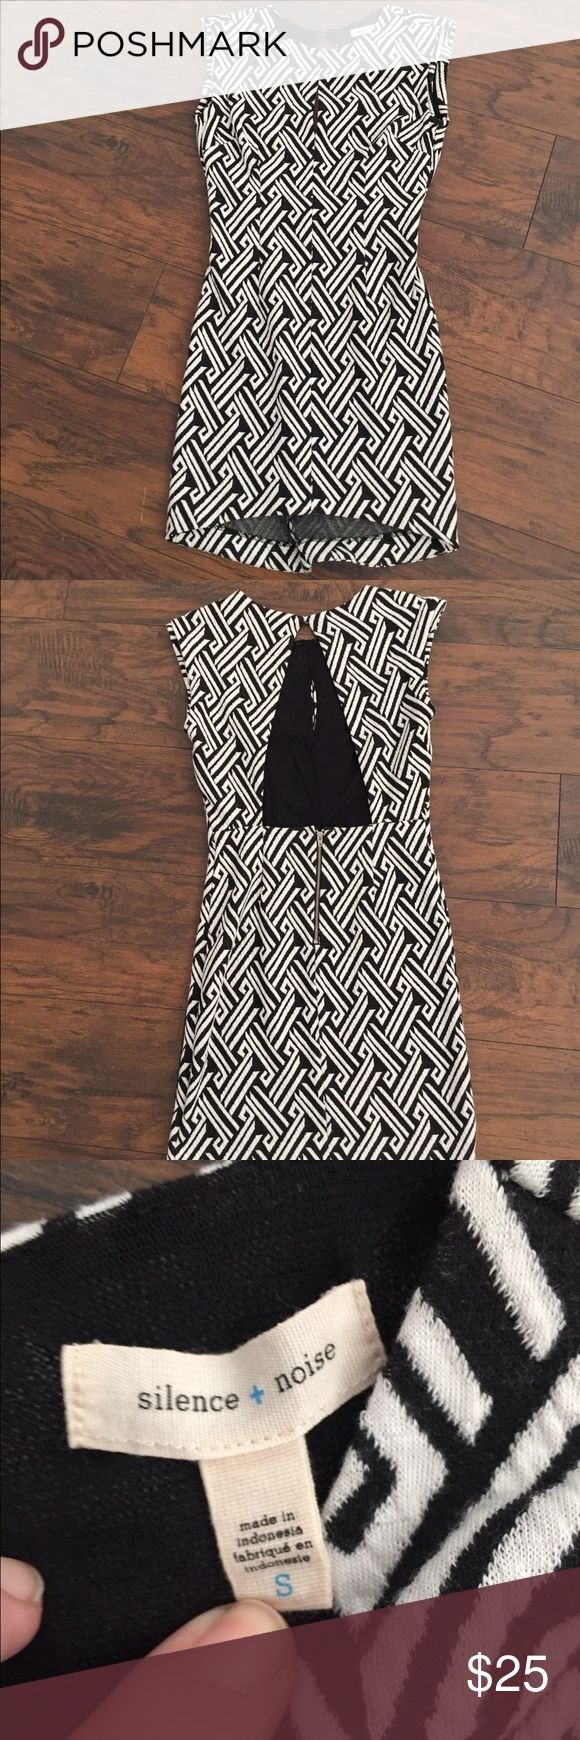 """Urban Outfitters Silence & Noise Dress This flattering dress is made of 16% Rayon, 1% Spandex, and 83% Rayon. The lining is 100% Nylon.  The quality of this dress is what you would expect from Anthropologie.  This dress is so cute and the black and white design is so unique. It has a keyhole in the front and the back is open. The dress is 33"""" long in the front and 35"""" long in the back so there is a slight hi/lol design to it. Urban Outfitters Dresses Midi"""